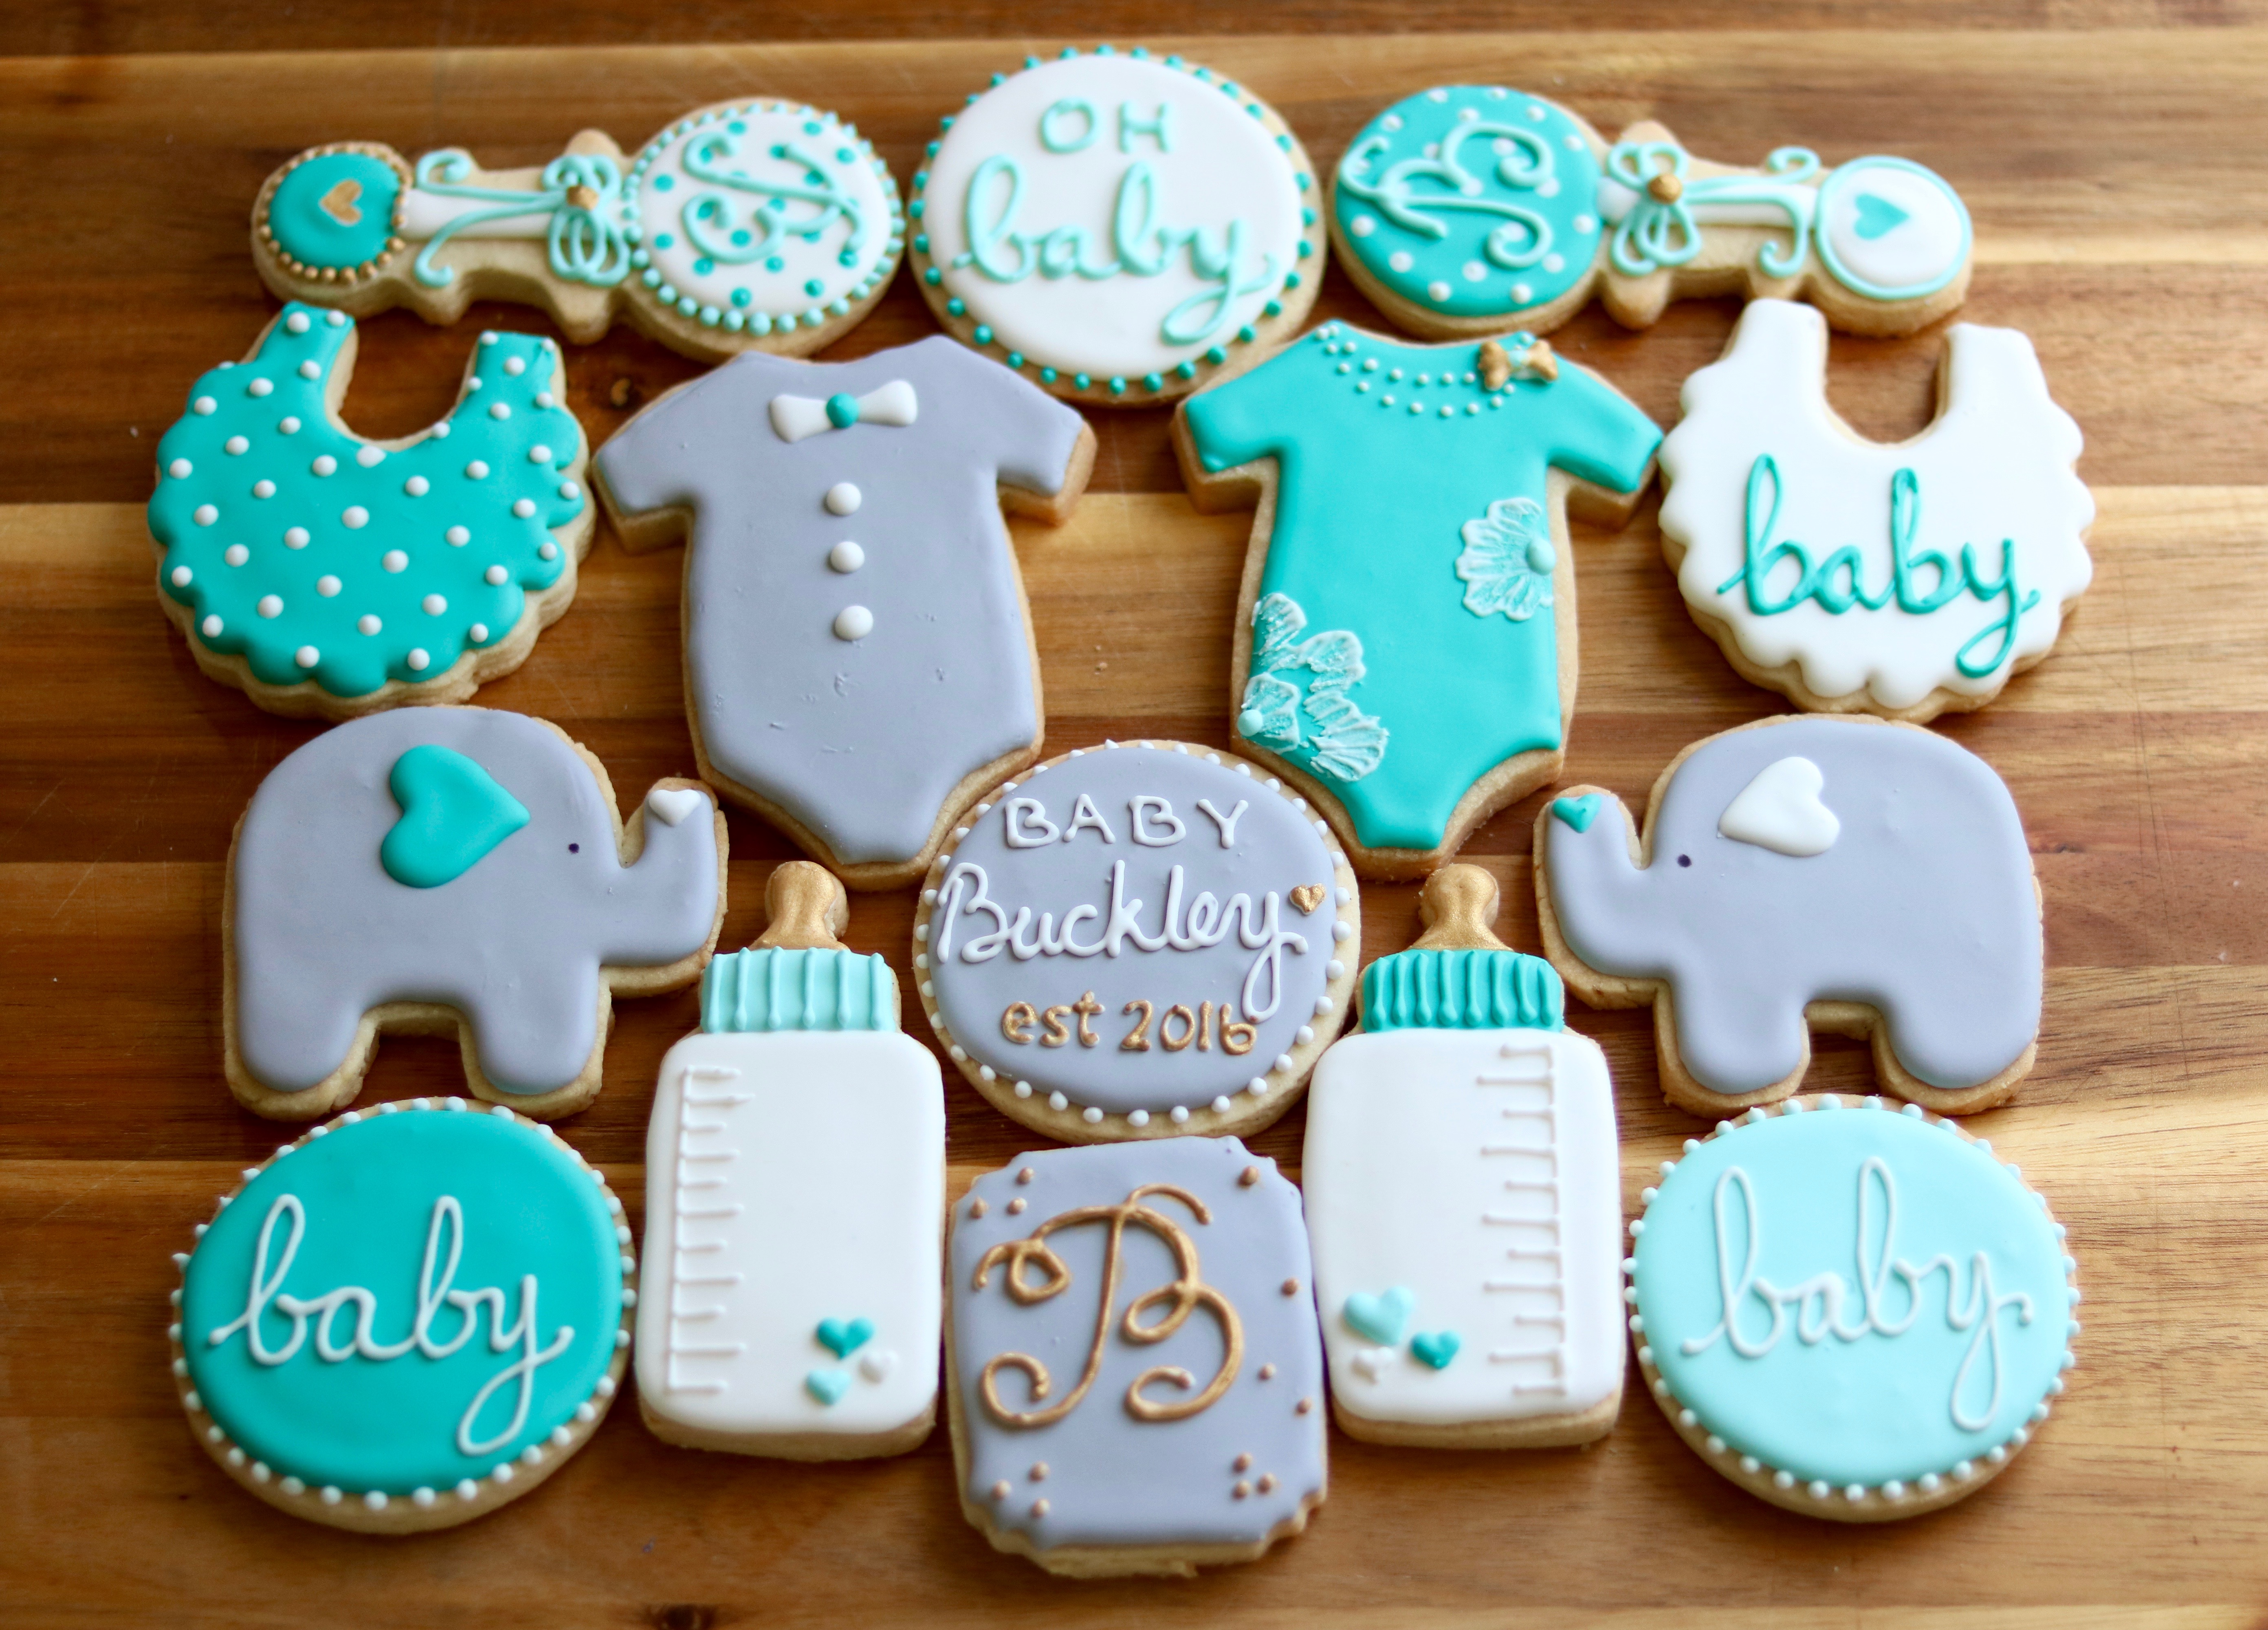 Baby Buckley Sugar Cookies